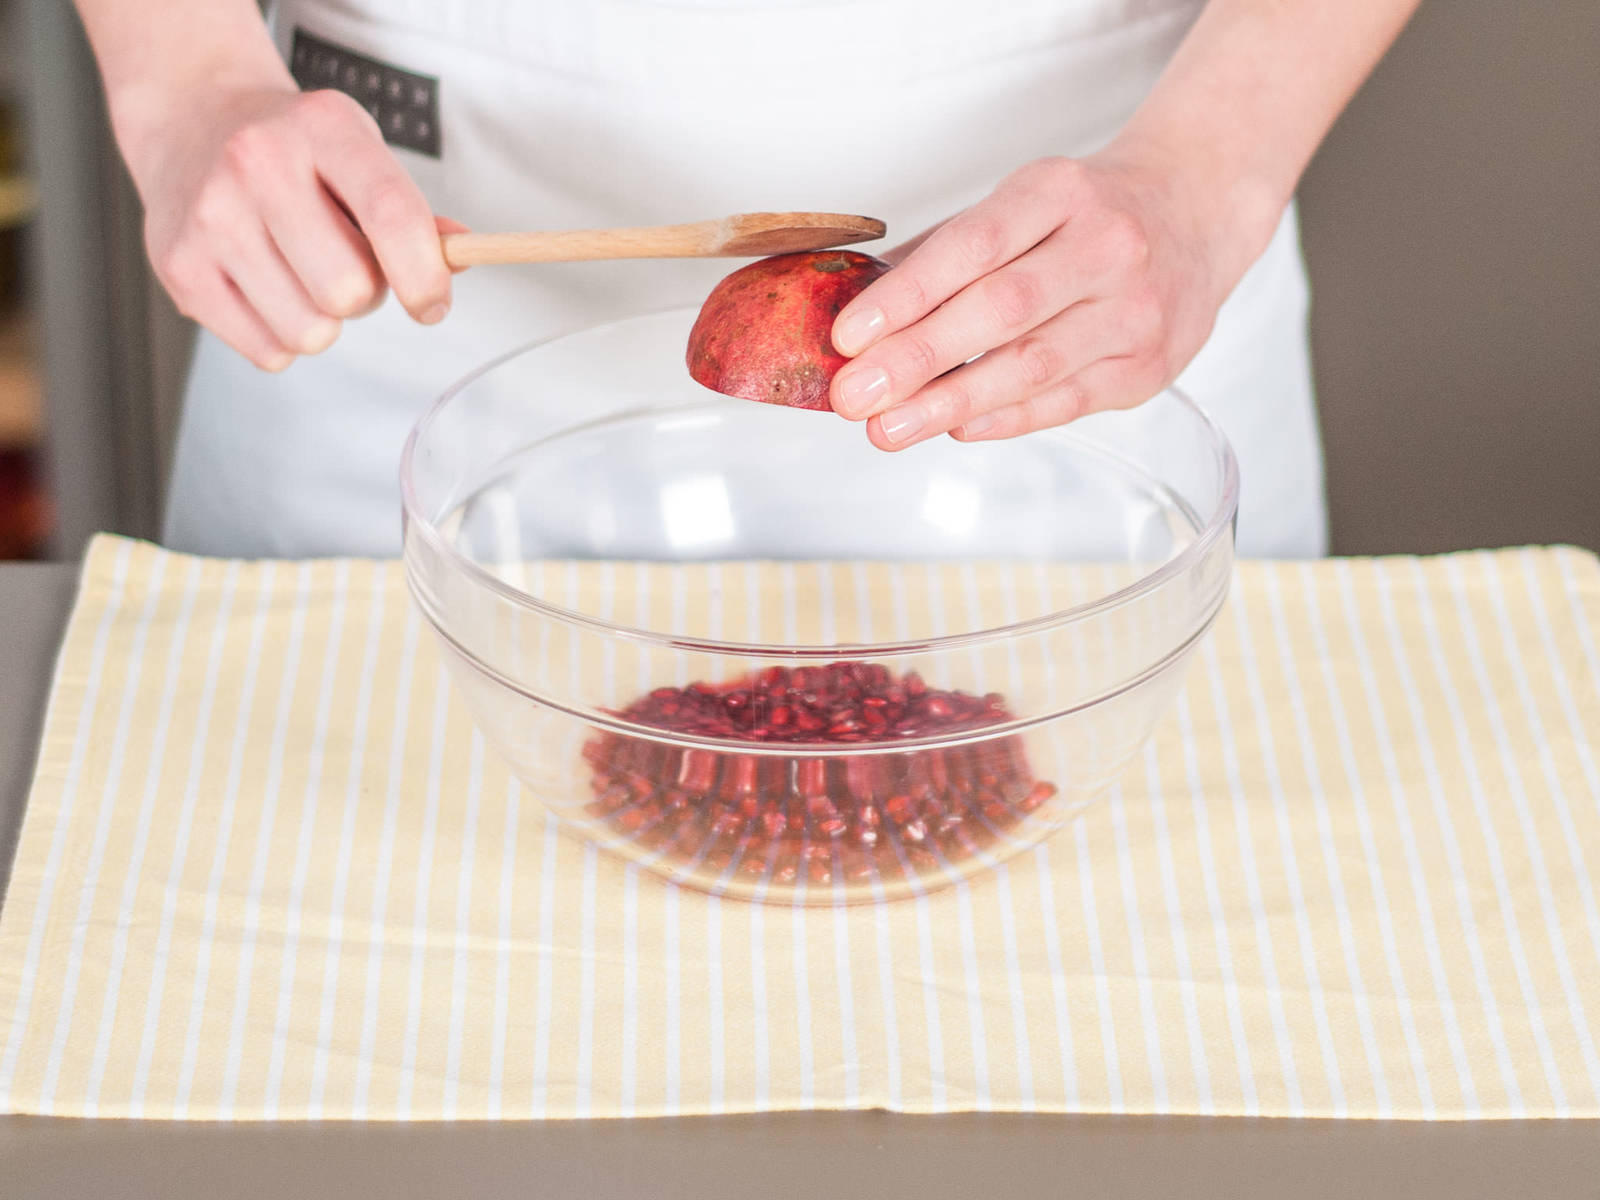 Remove pomegranate seeds and add to large bowl. For easy seed removal, first roll pomegranate on counter to loosen seeds, cut in half, and hold each half over the bowl while tapping firmly with wooden spoon.